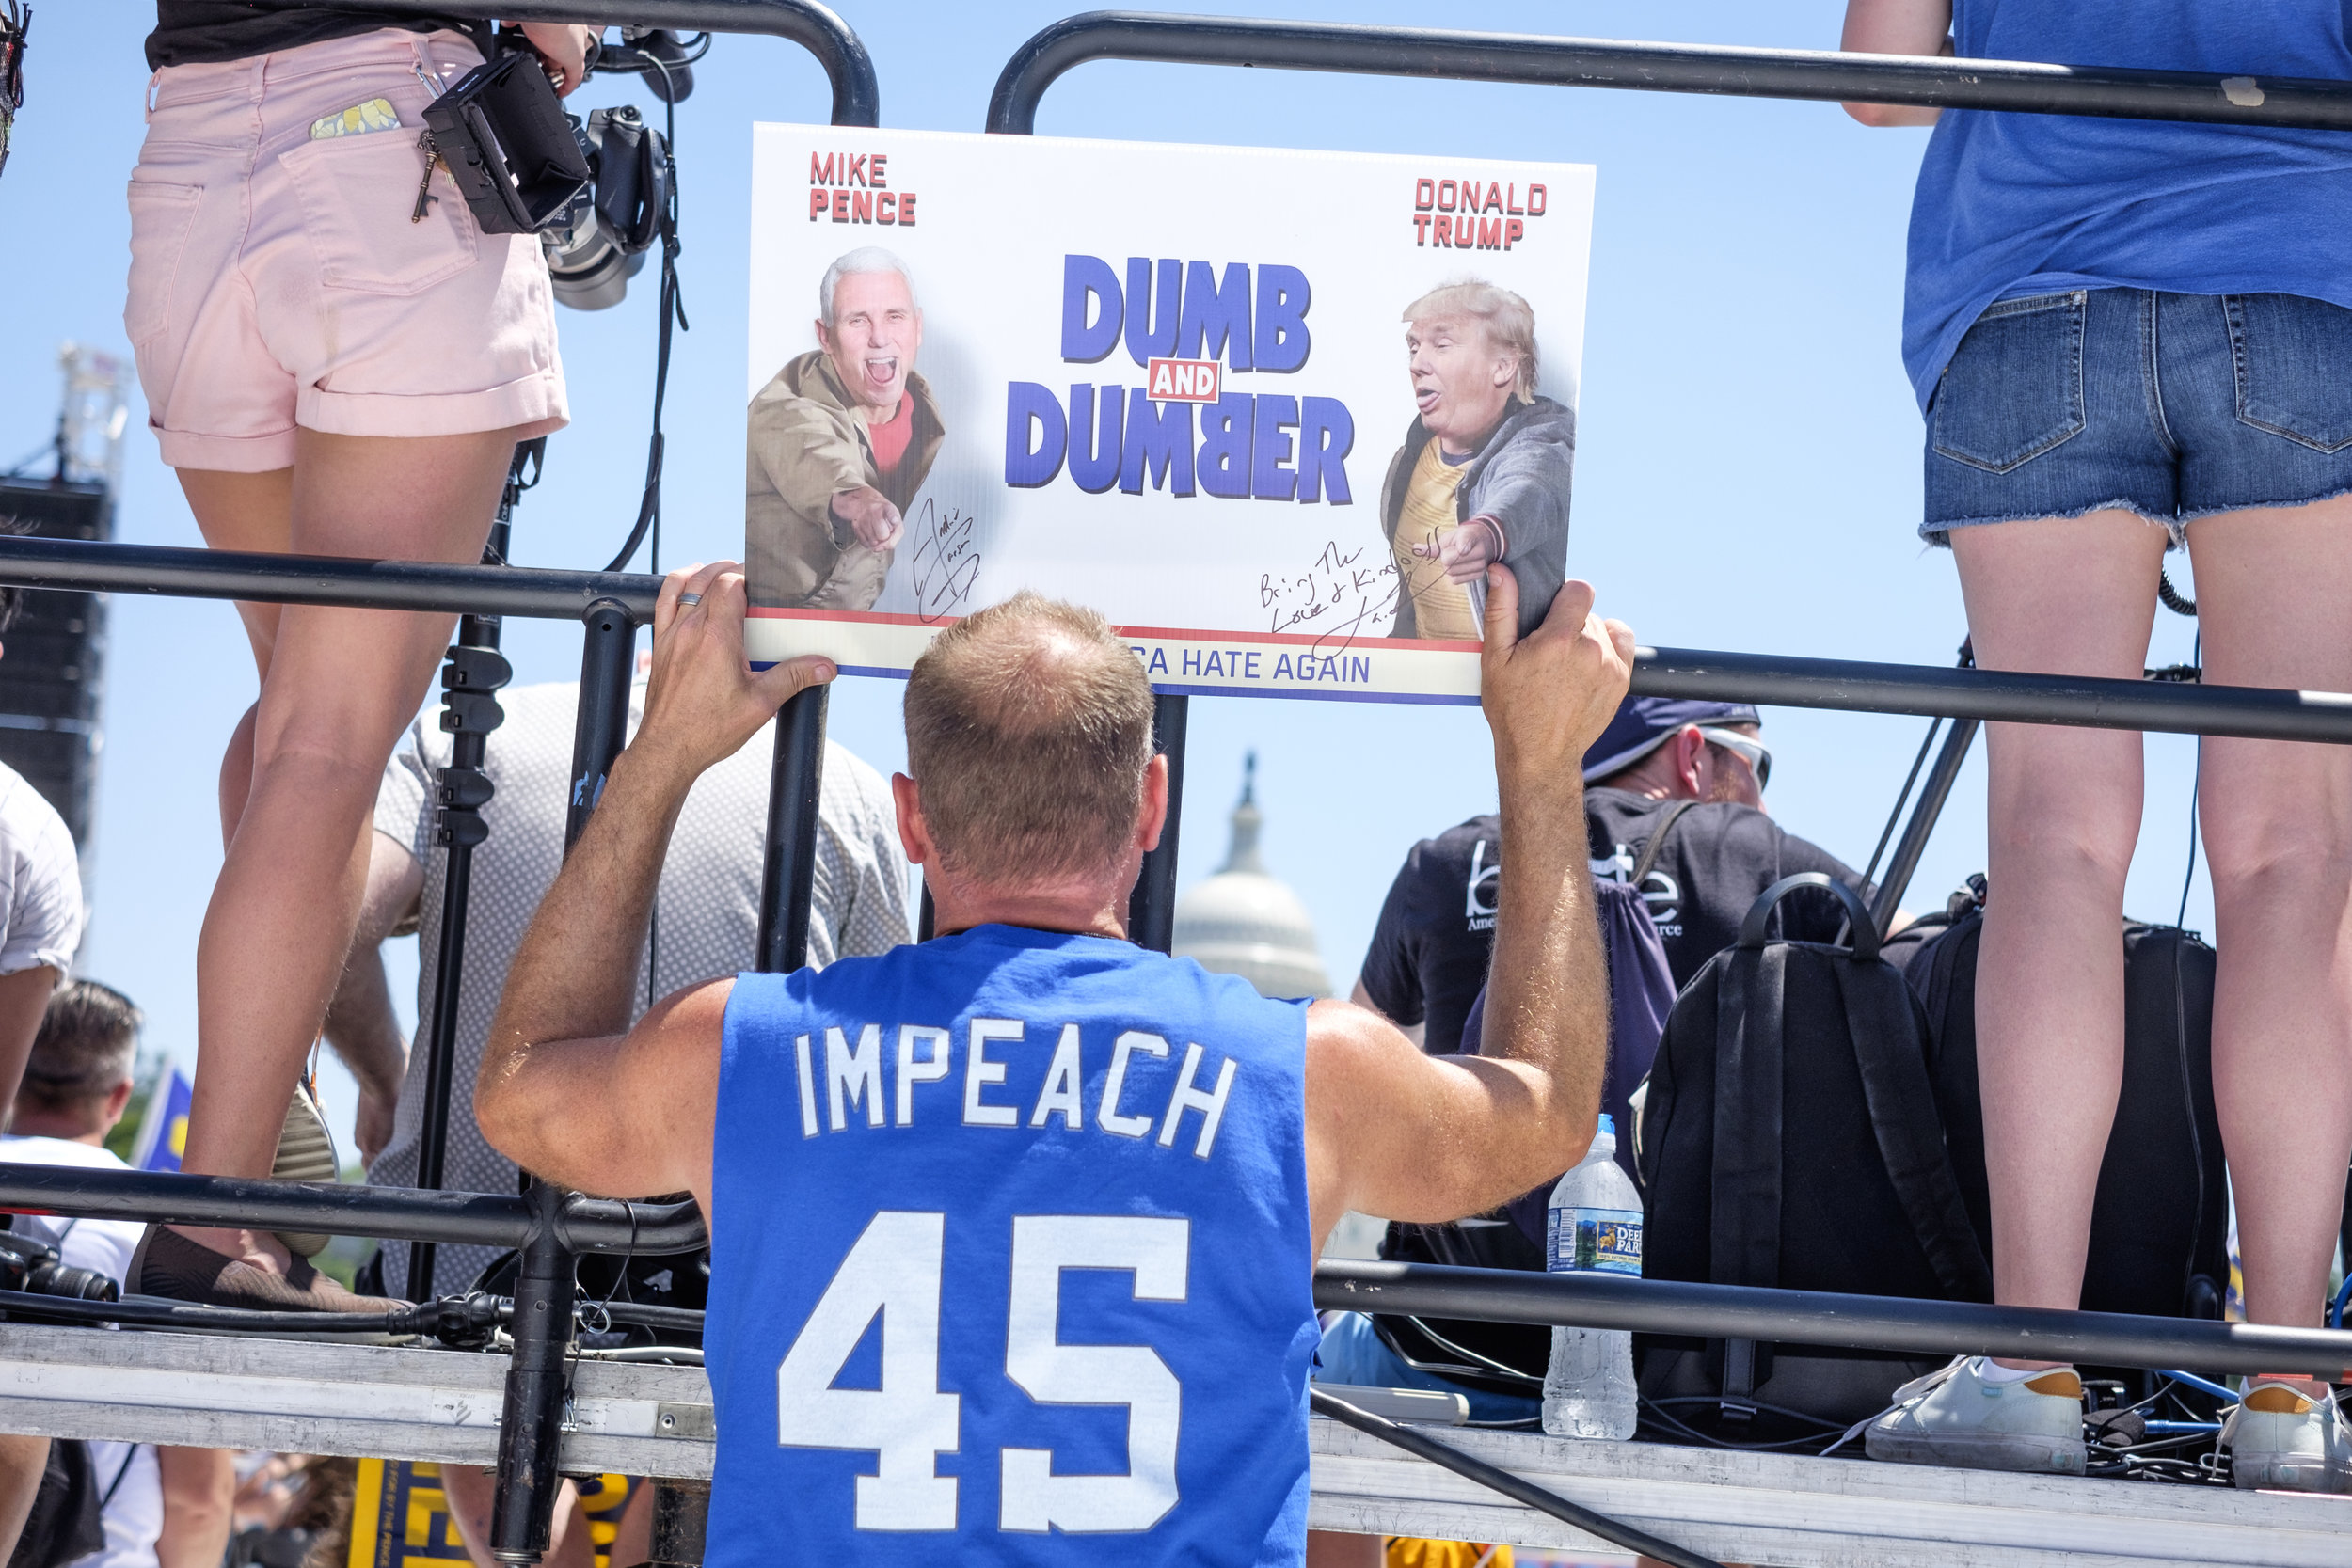 """Kevin Warren of Indianapolis, IN is seen from behind holding his poster as he listens to speakers at the rally following the Equality March for Unity and Pride on Sunday, June 11, 2017 in Washington, DC. I asked him why he attended the march and he replied, """"Well, we're here to obviously march on Washington, and we're representing Indiana. We started a political action committee two years ago called Pence Must Go. This is just part of it and we're bringing it to DC."""""""